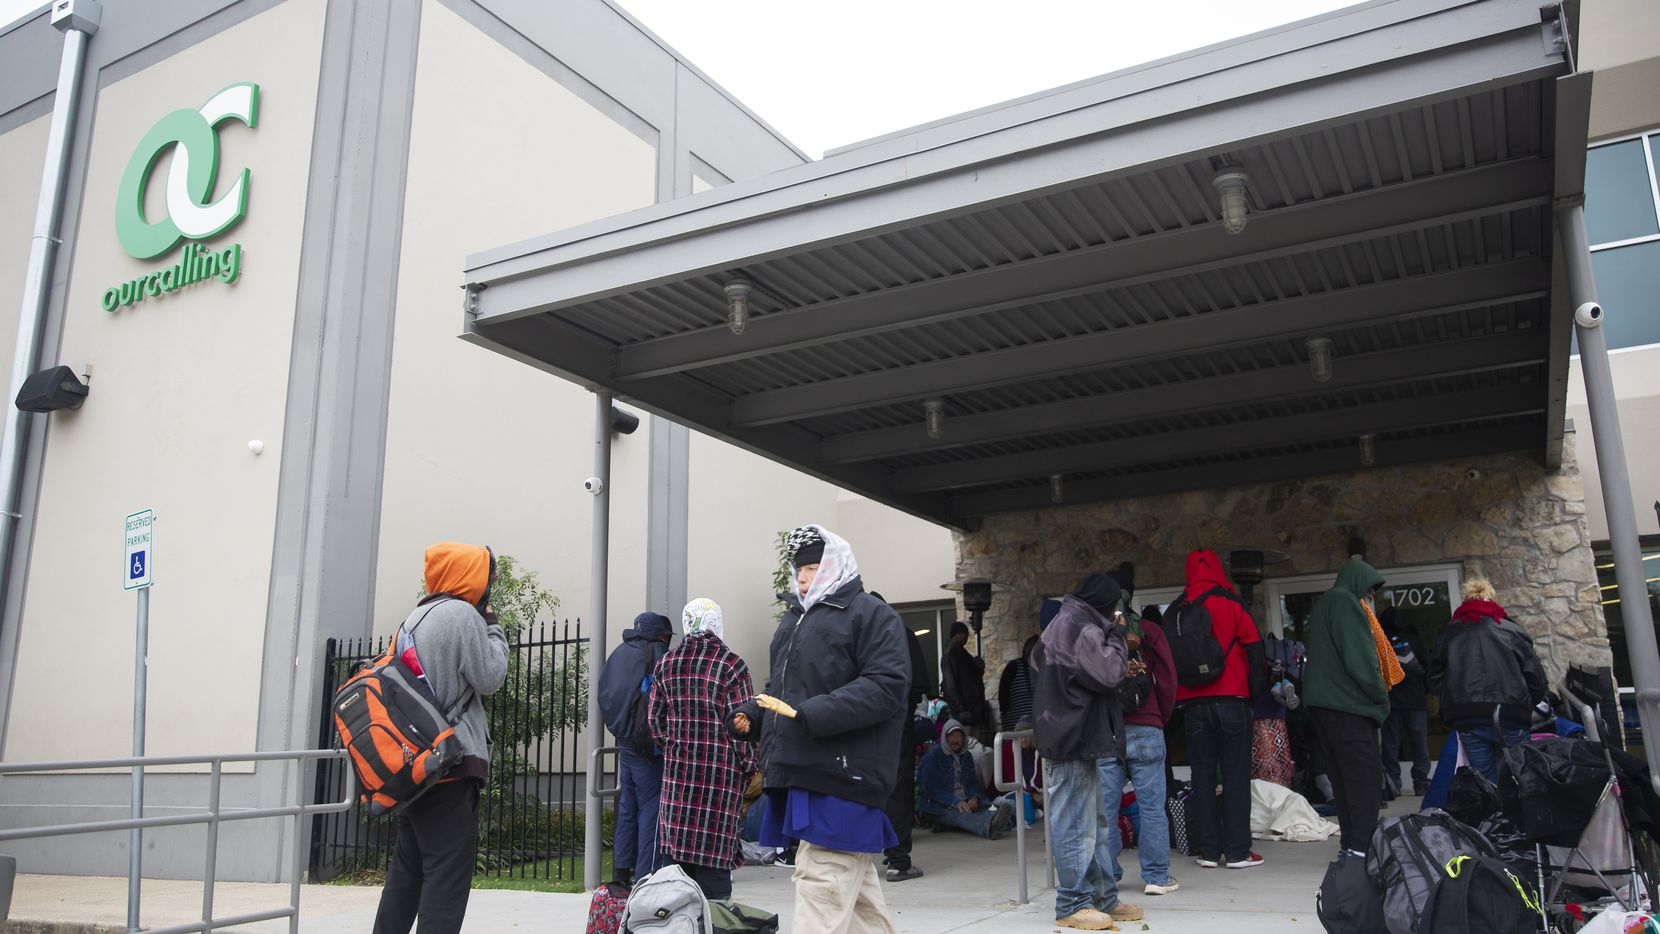 People wait outside of OurCalling, a faith-based organization, ahead of tonight's freeze on Nov. 11, 2019 in Dallas. An update to city code will allow OurCalling to operate as an emergency shelter over the next several days.